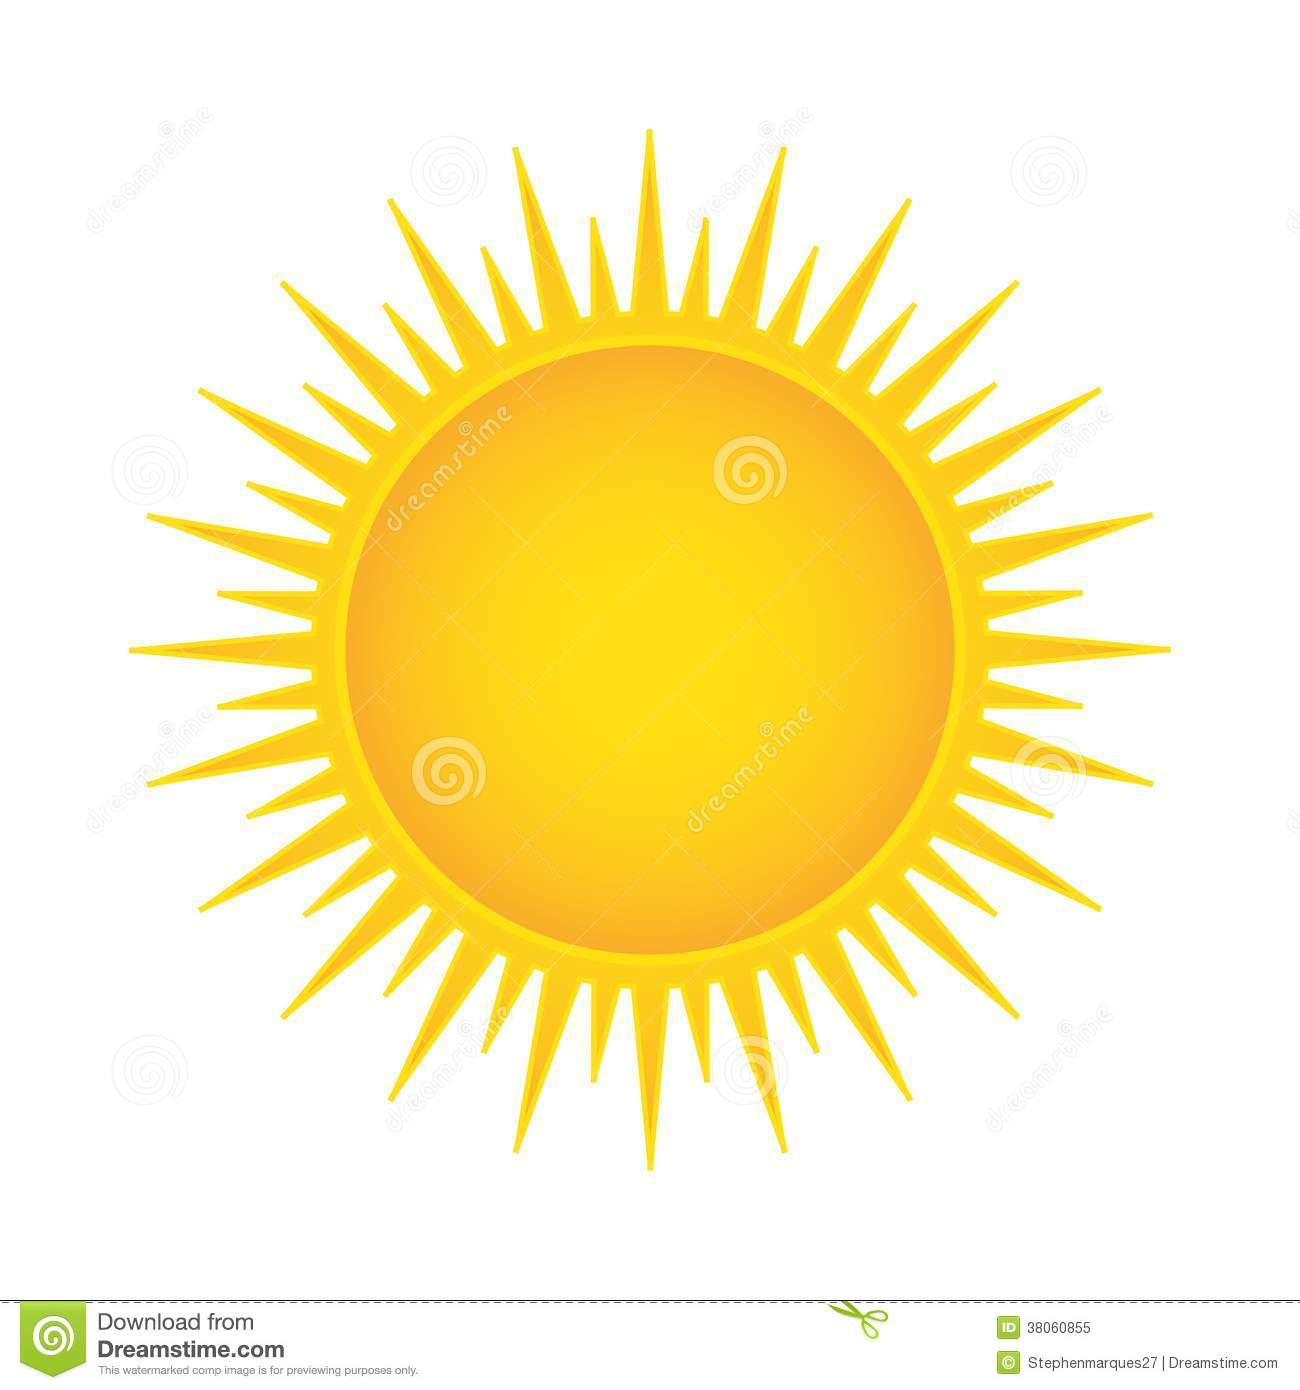 Royalty Free Stock Photo Sun Vector Illustration Image38060855